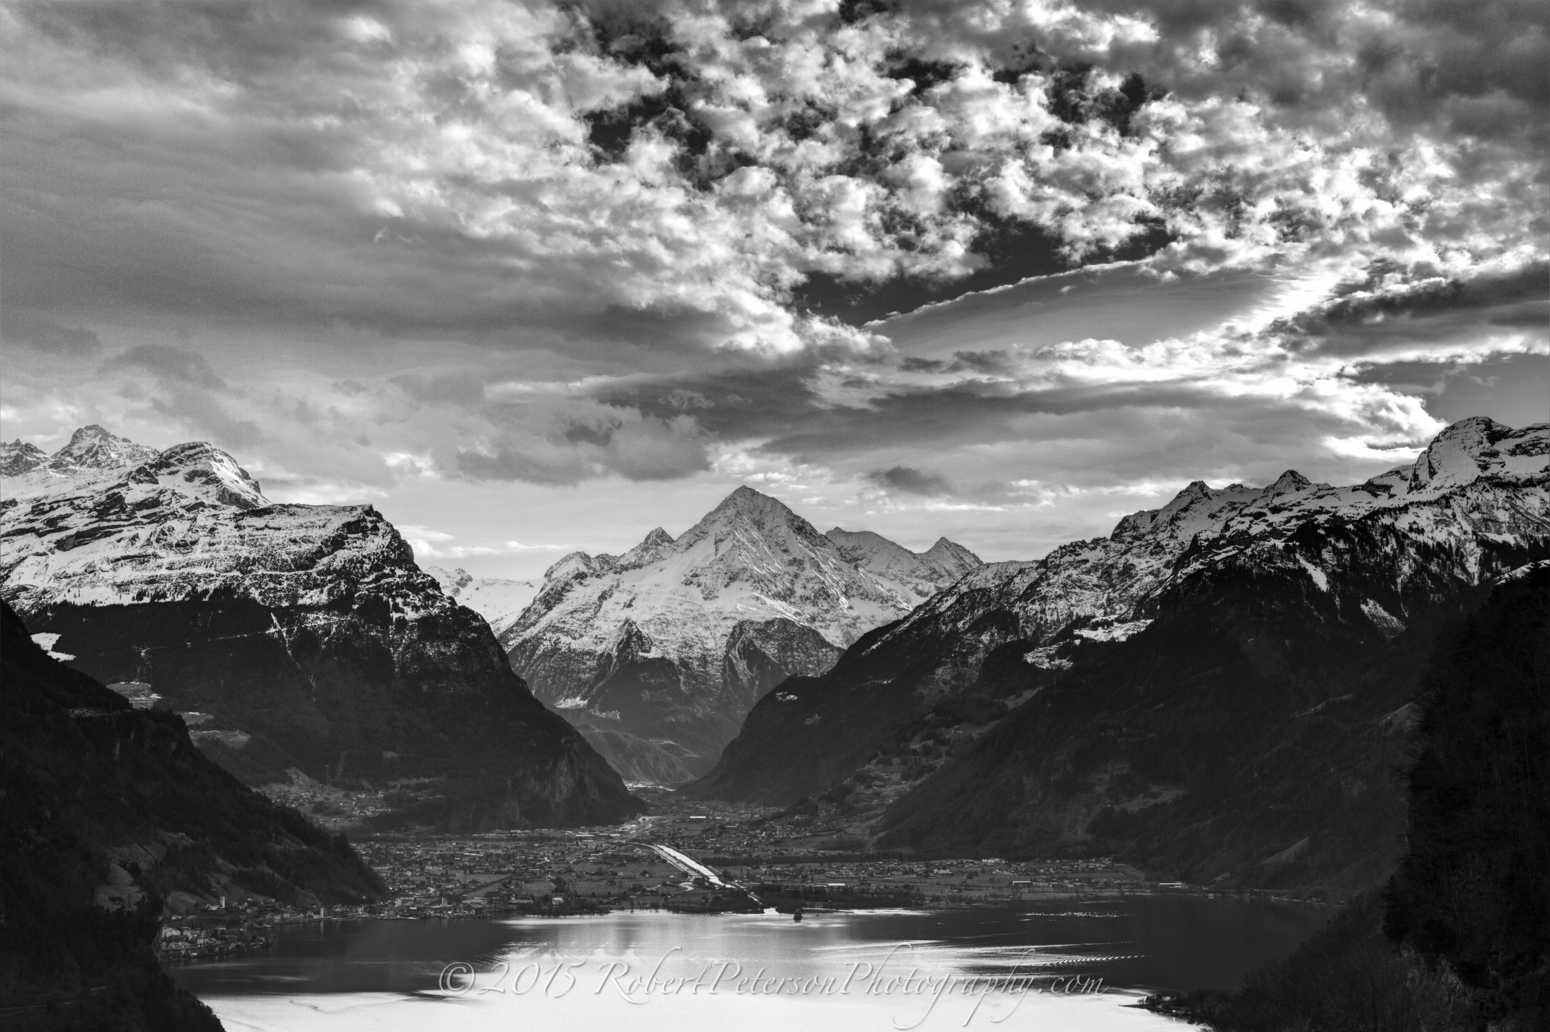 HDR Photography Altdorf switzerland Seelisberg BW black white Robert Peterson Photography